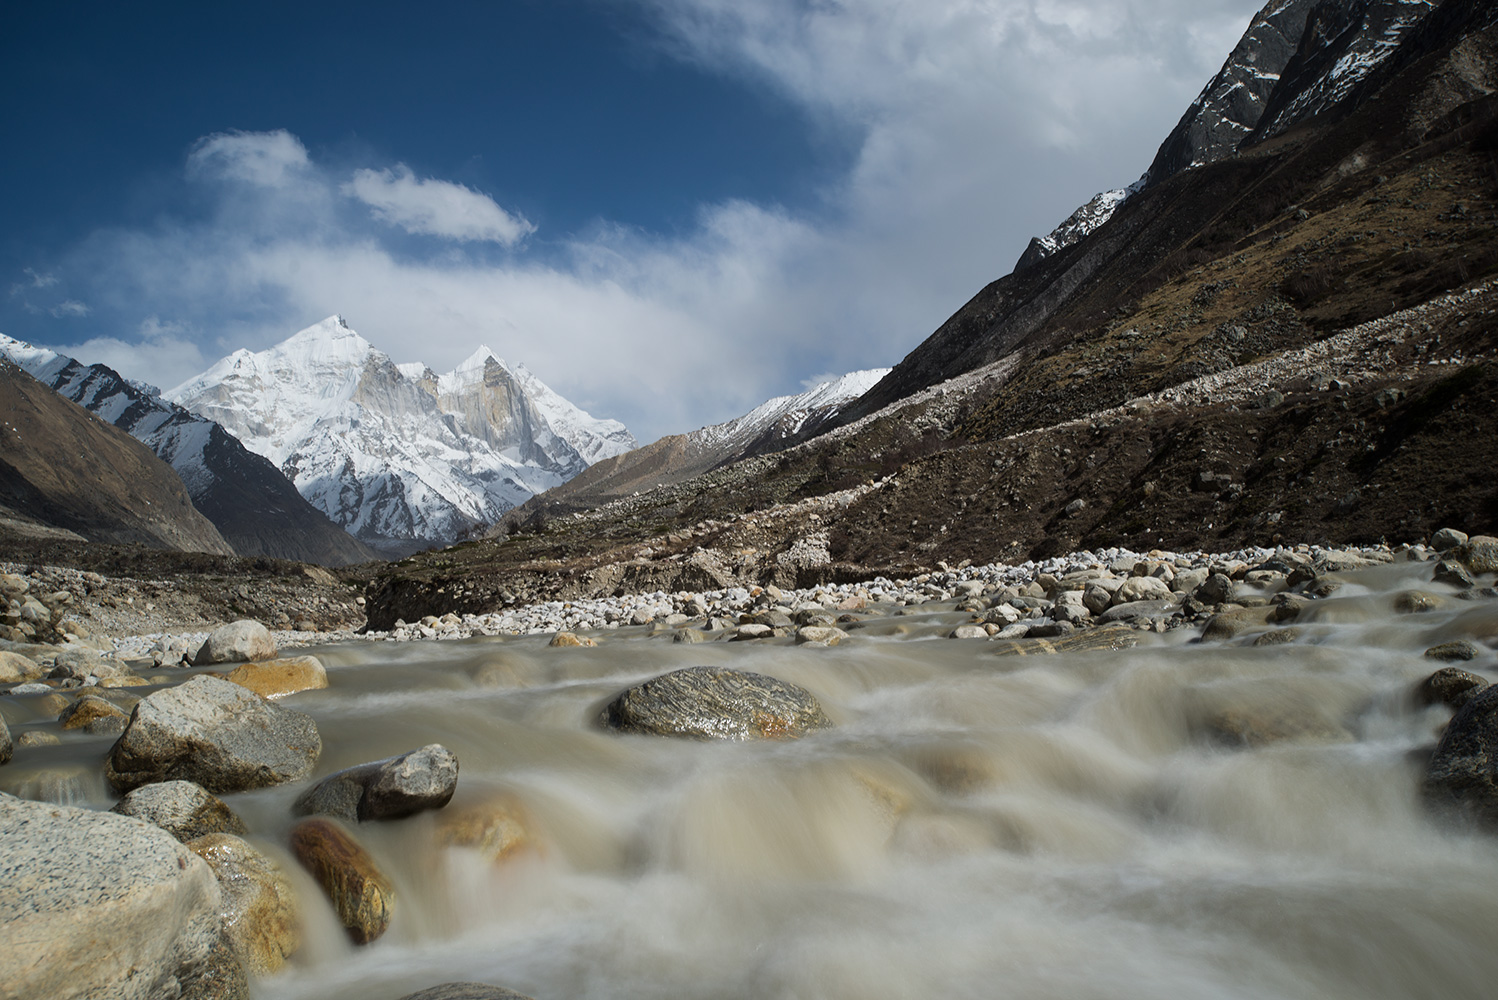 At Chirbasa, with the Bhagirathi peaks straight ahead up valley.